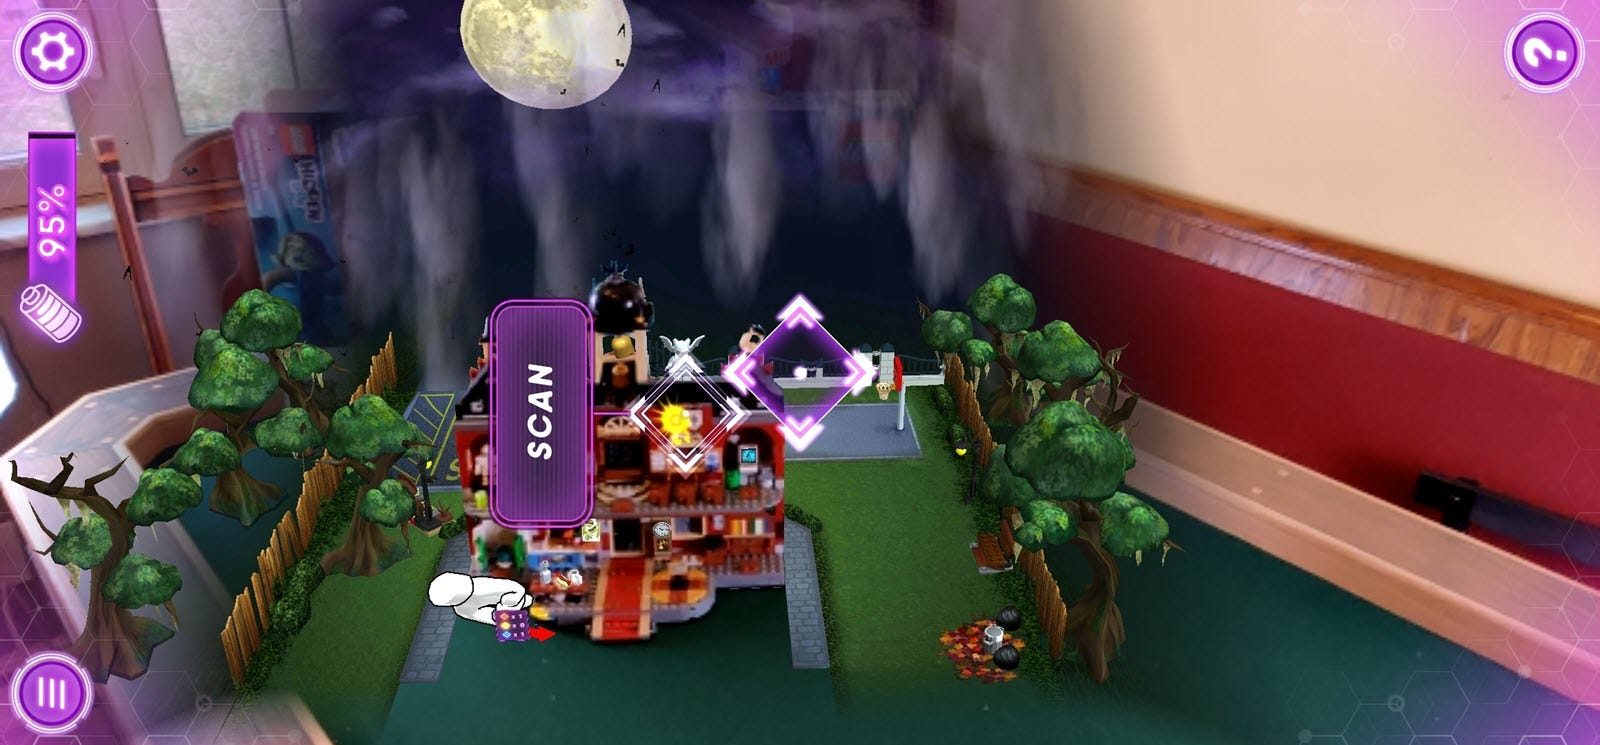 An augmented reality view of a haunted school on a game table.